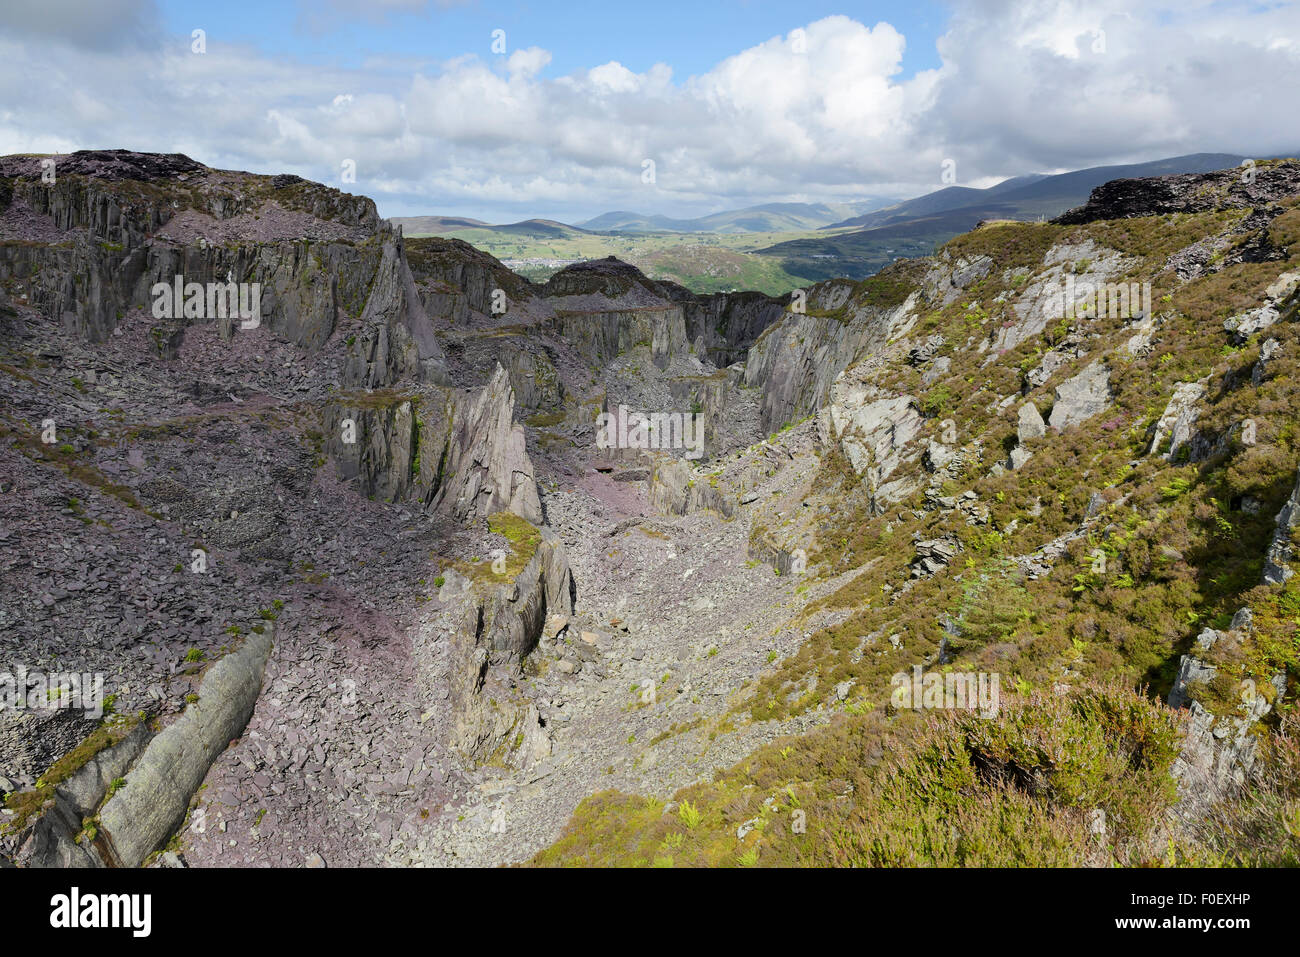 Glyn Rhonwy quarries behind Llanberis where the Quarry Battery Company plan to develop a pump storage power station. - Stock Image